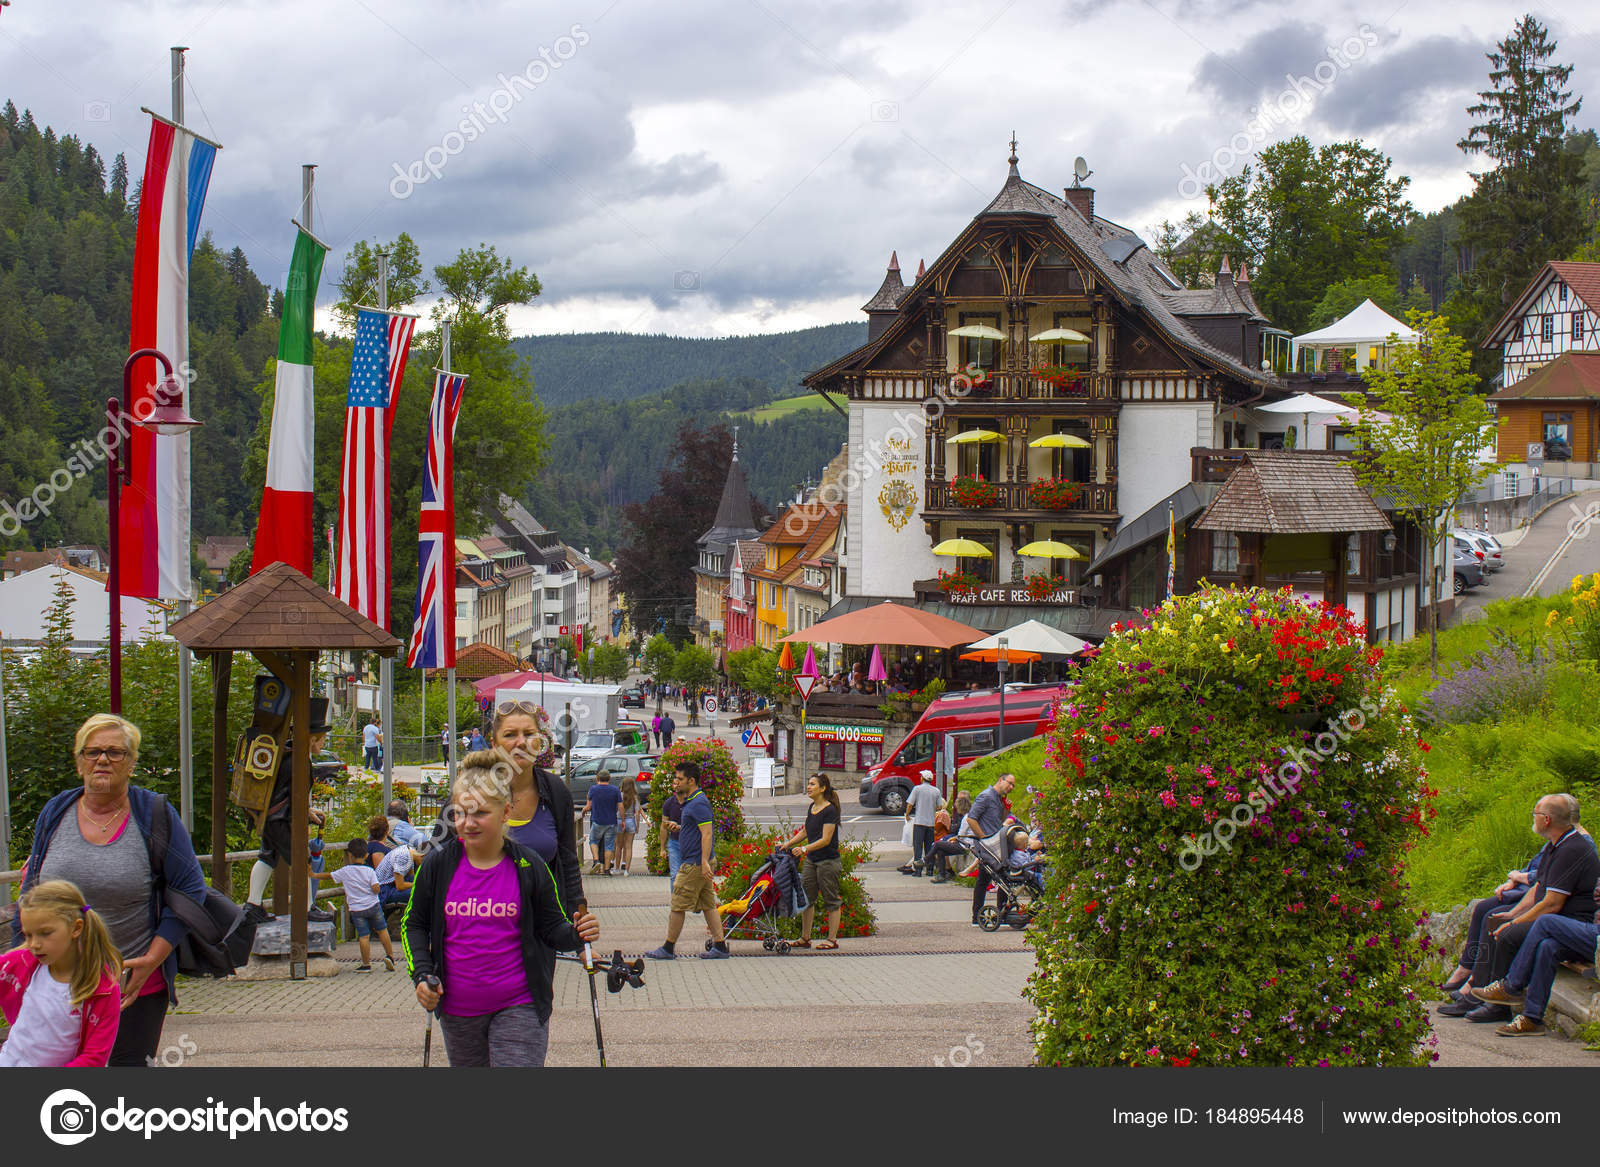 Triberg in black forest germany stock editorial photo - Piscine foret noire allemagne saint denis ...